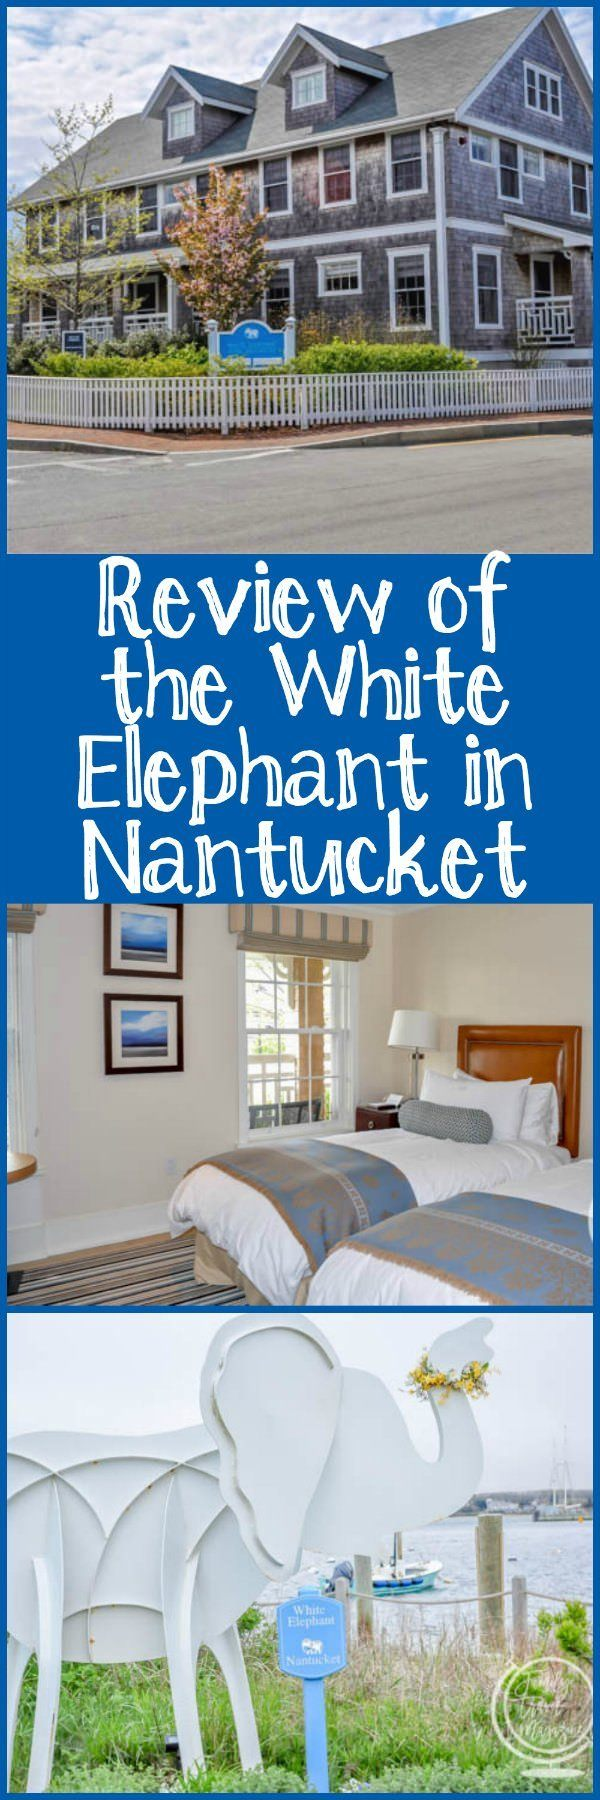 Review of the White Elephant in Nantucket